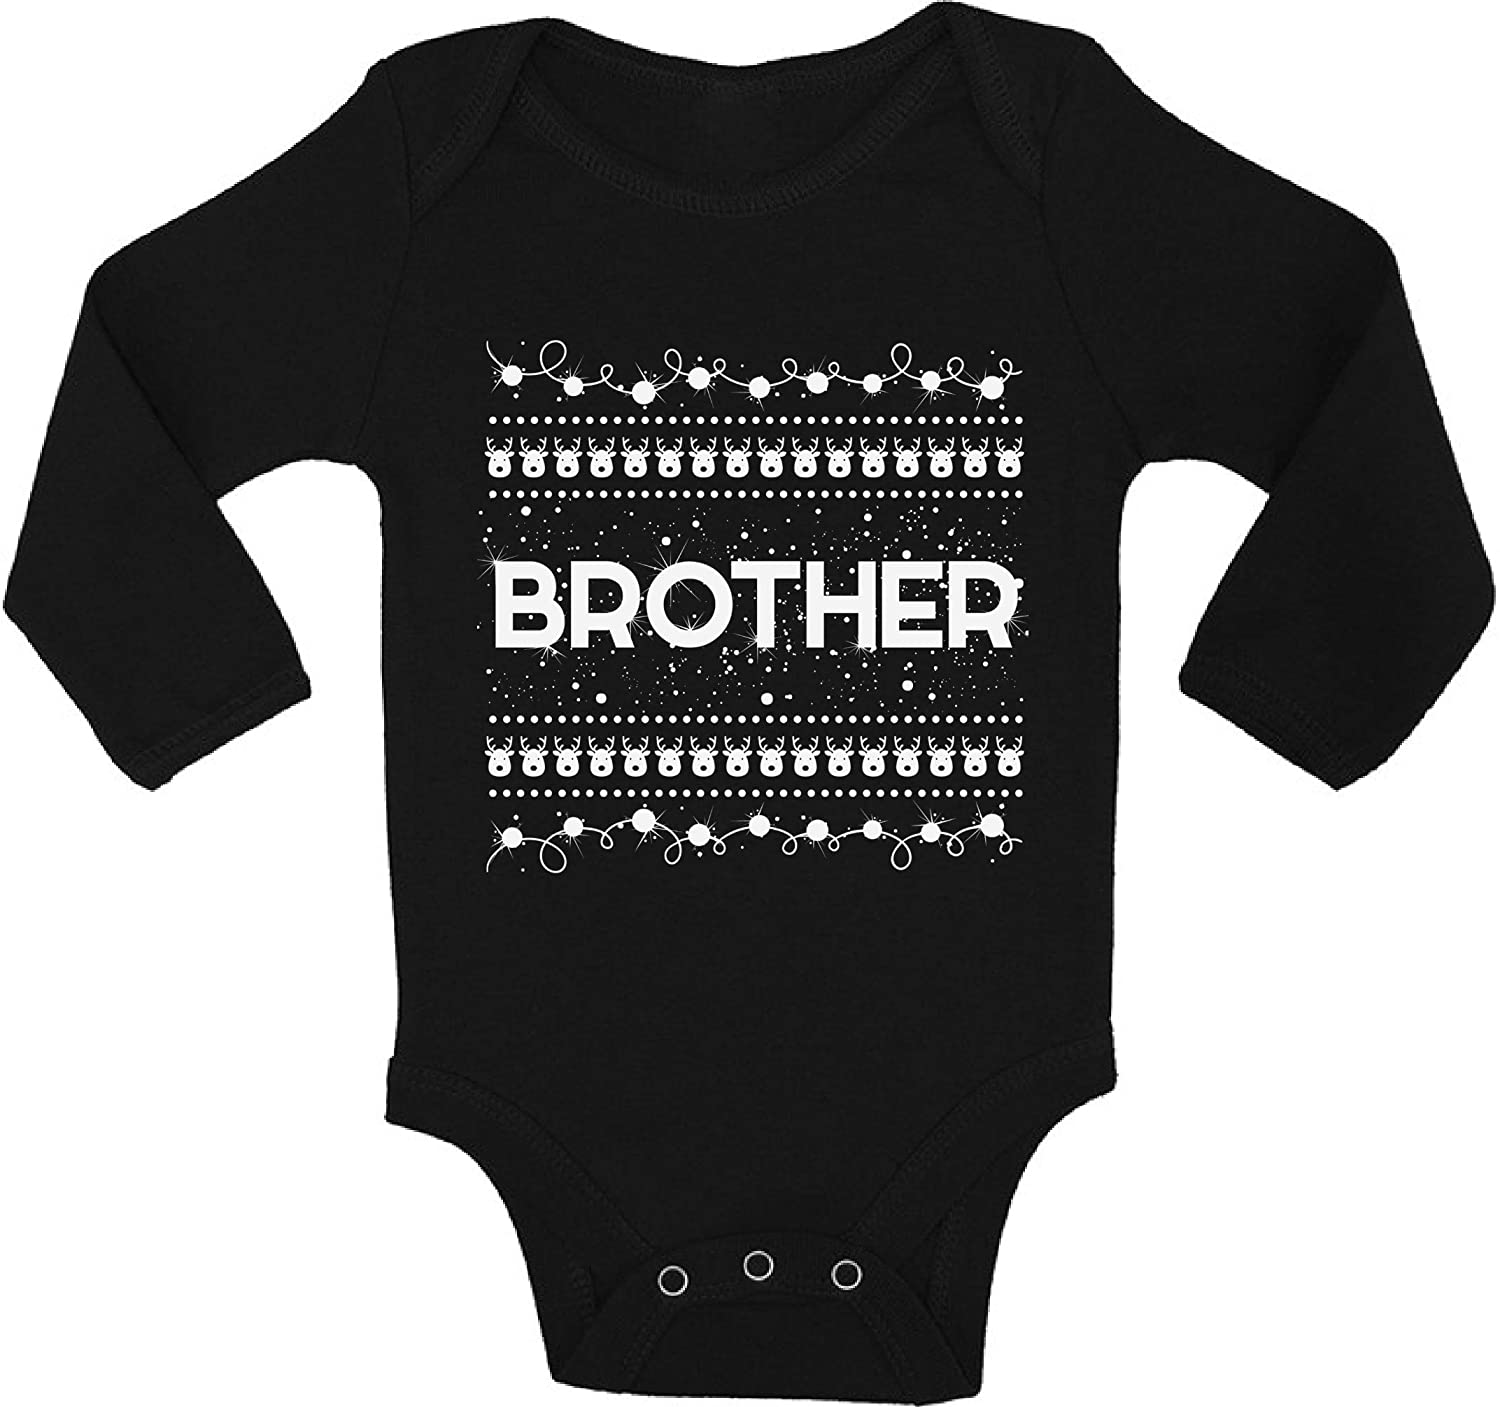 Awkward Styles Ugly Christmas Baby Outfit Bodysuit Brother Xmas Pattern Baby Romper